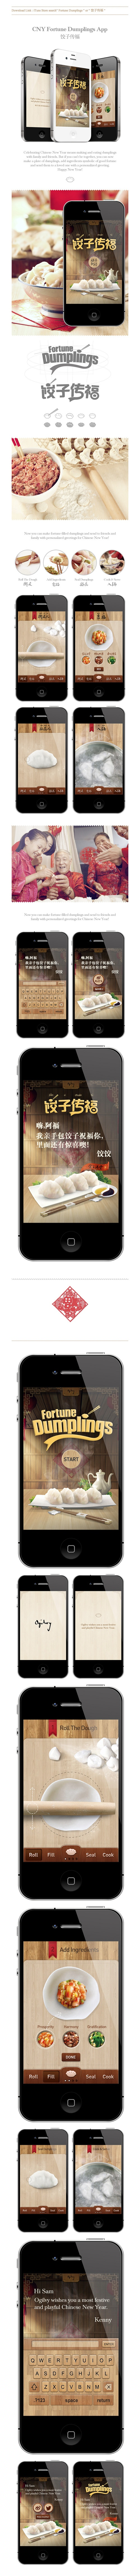 Ogilvy Beijing_CNY Fortune Dumplings App by geng wei, via Behance *** Celebrating Chinese New Year means making and eating dumplings with family and friends.   But if you can't be together, you can now make a plate of dumplings, add ingredients symbolic   of good fortune and send them to a loved one with a personalized greeting. Happy New Year!